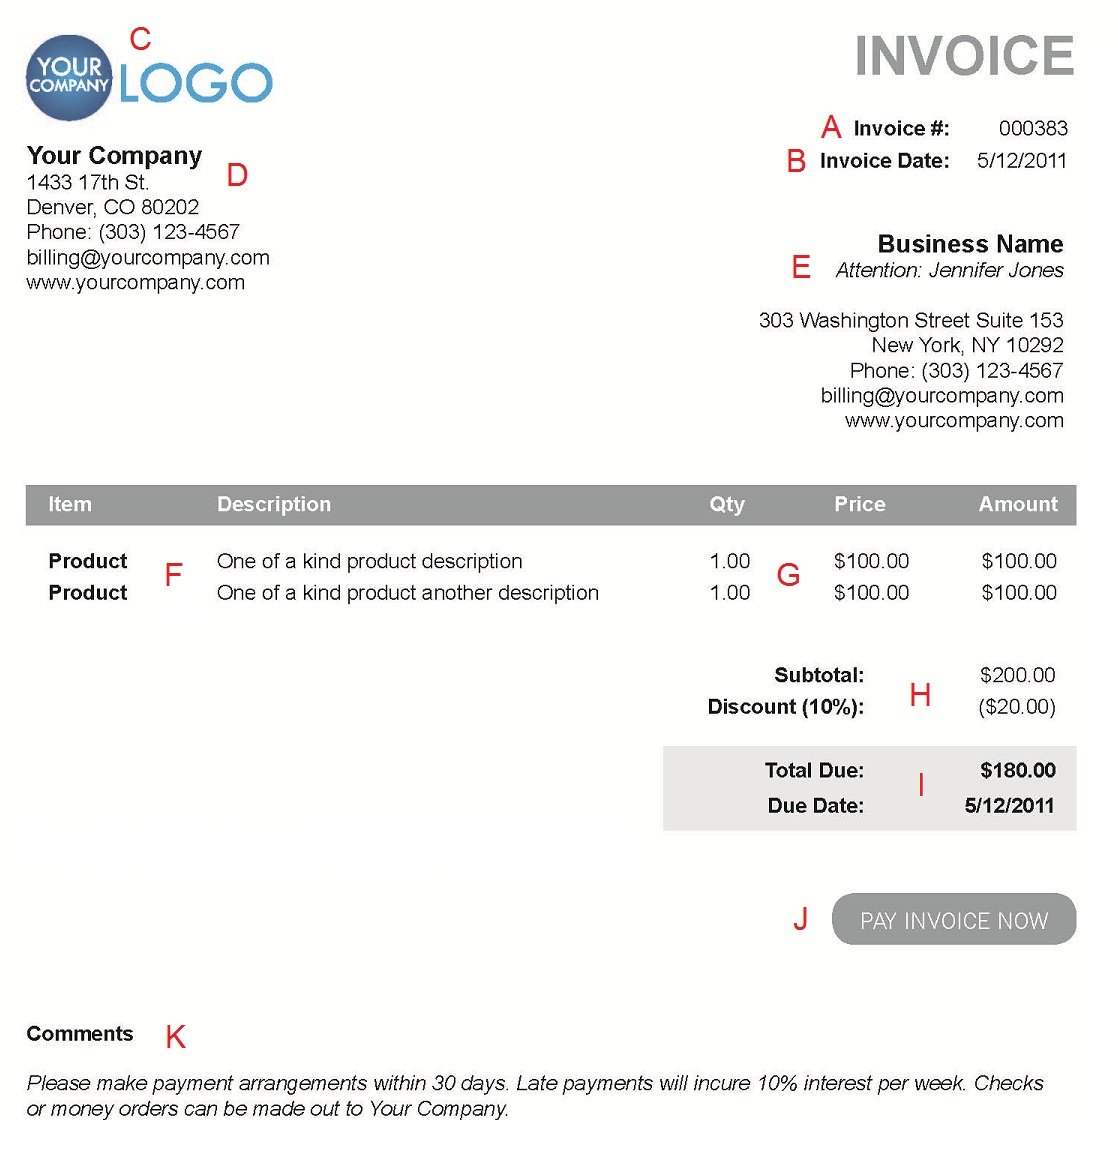 Occupyhistoryus  Mesmerizing The  Different Sections Of An Electronic Payment Invoice With Heavenly A  With Delightful Custom Invoice Pads Also Express Invoice Review In Addition Ford F  Invoice And Invoice Template Free Printable As Well As Blank Invoice Microsoft Word Additionally Google Docs Template Invoice From Paysimplecom With Occupyhistoryus  Heavenly The  Different Sections Of An Electronic Payment Invoice With Delightful A  And Mesmerizing Custom Invoice Pads Also Express Invoice Review In Addition Ford F  Invoice From Paysimplecom